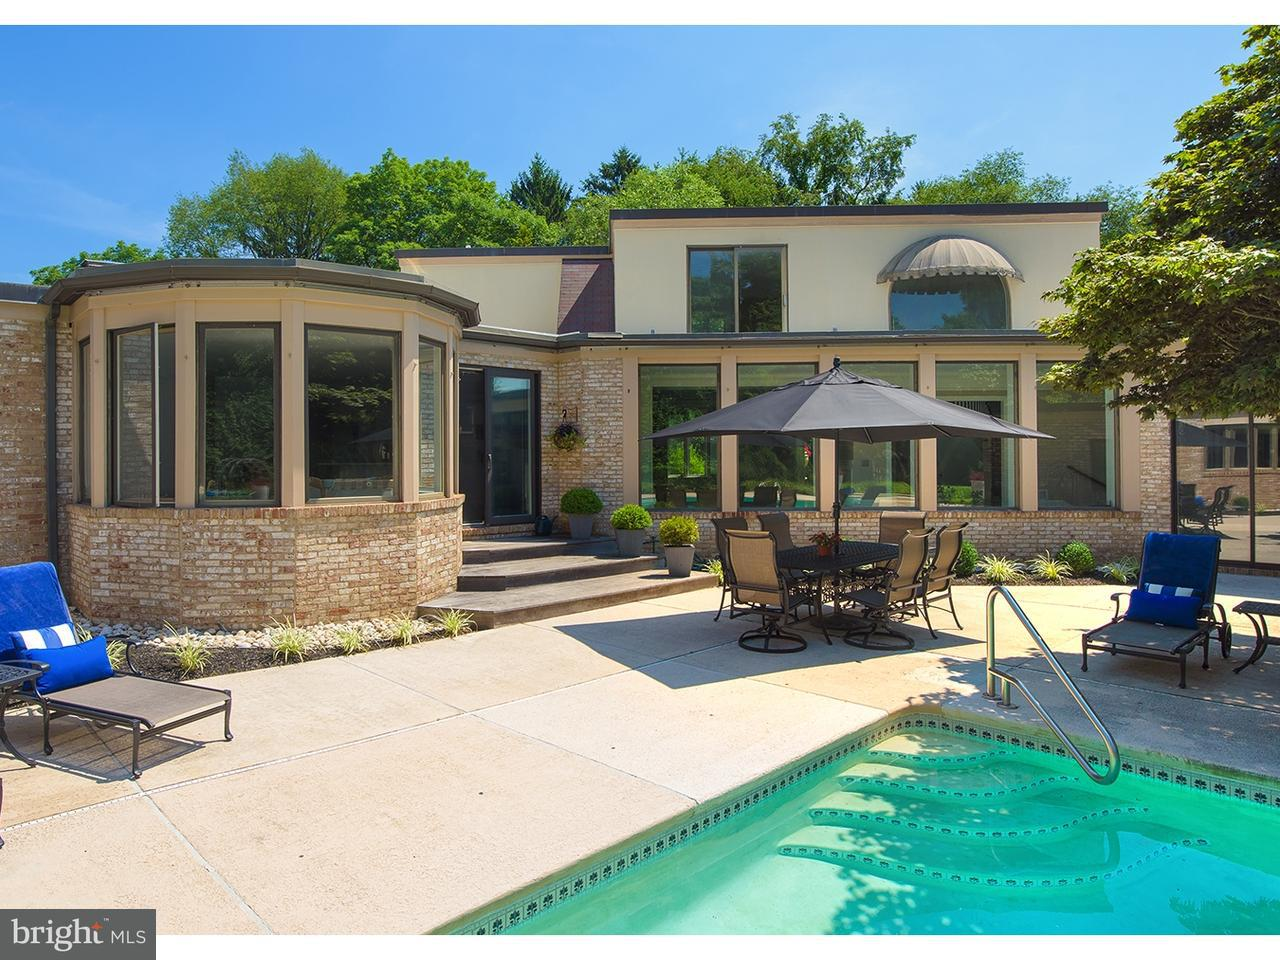 Single Family Home for Sale at 737 PADDOCK Lane Chadds Ford, Pennsylvania 19317 United States